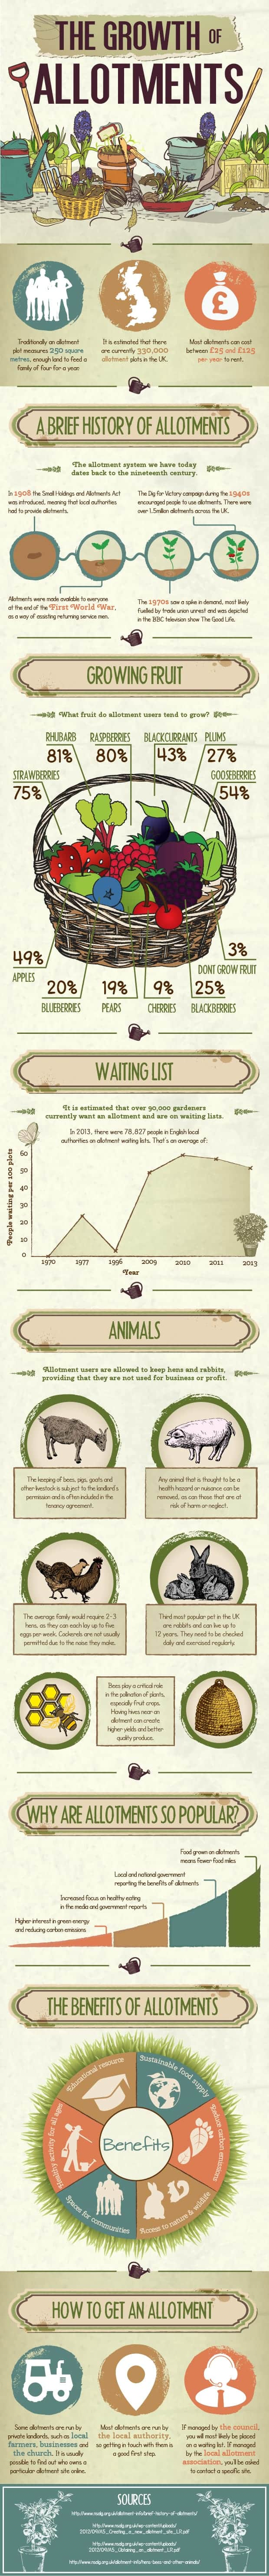 The Growth of Allotments [infographic]